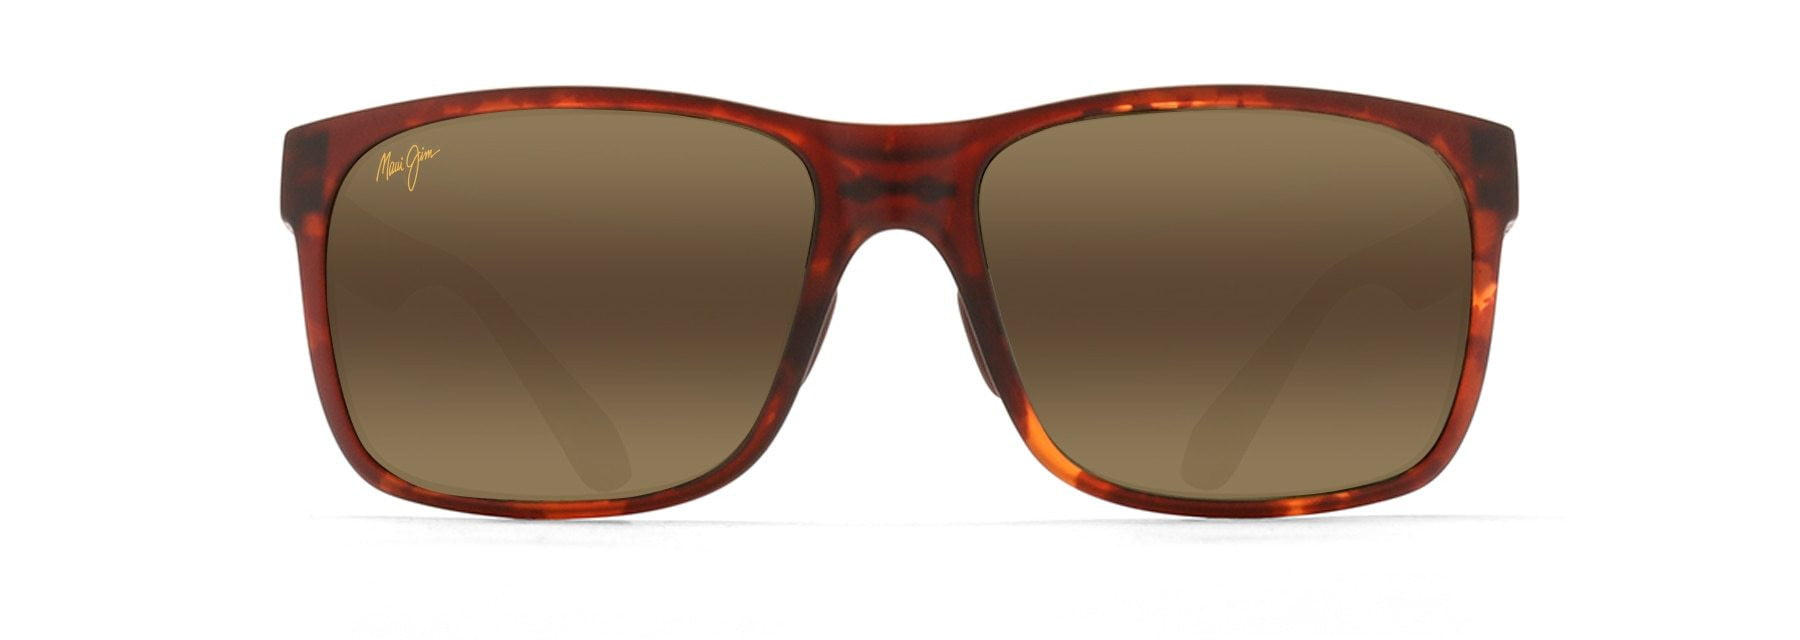 MyMaui Red Sands MM432-006 Sunglasses